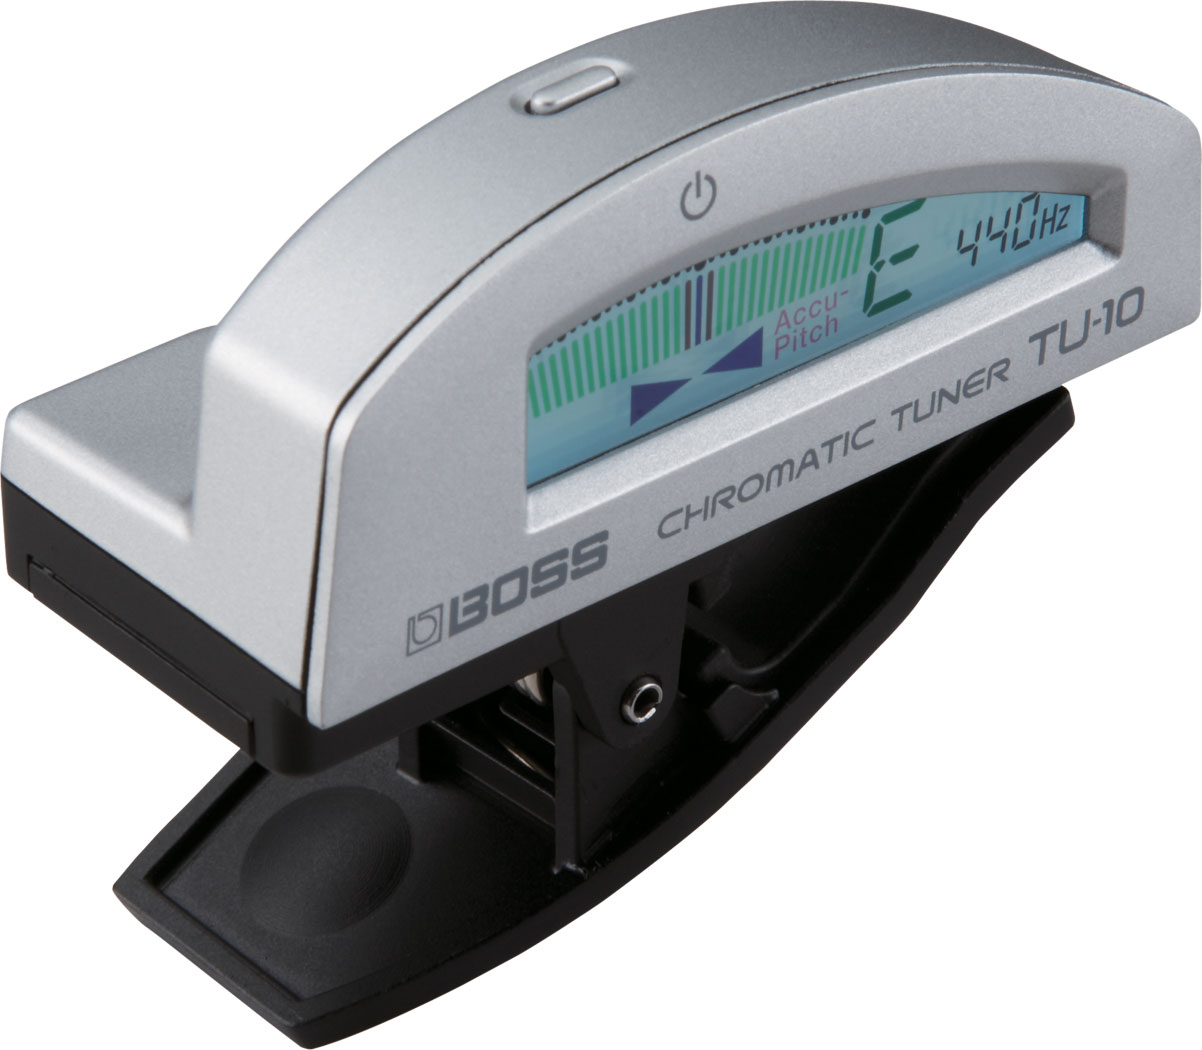 Tu: Rex And The Bass: Boss TU-10 Clip On Chromatic Tuner Review